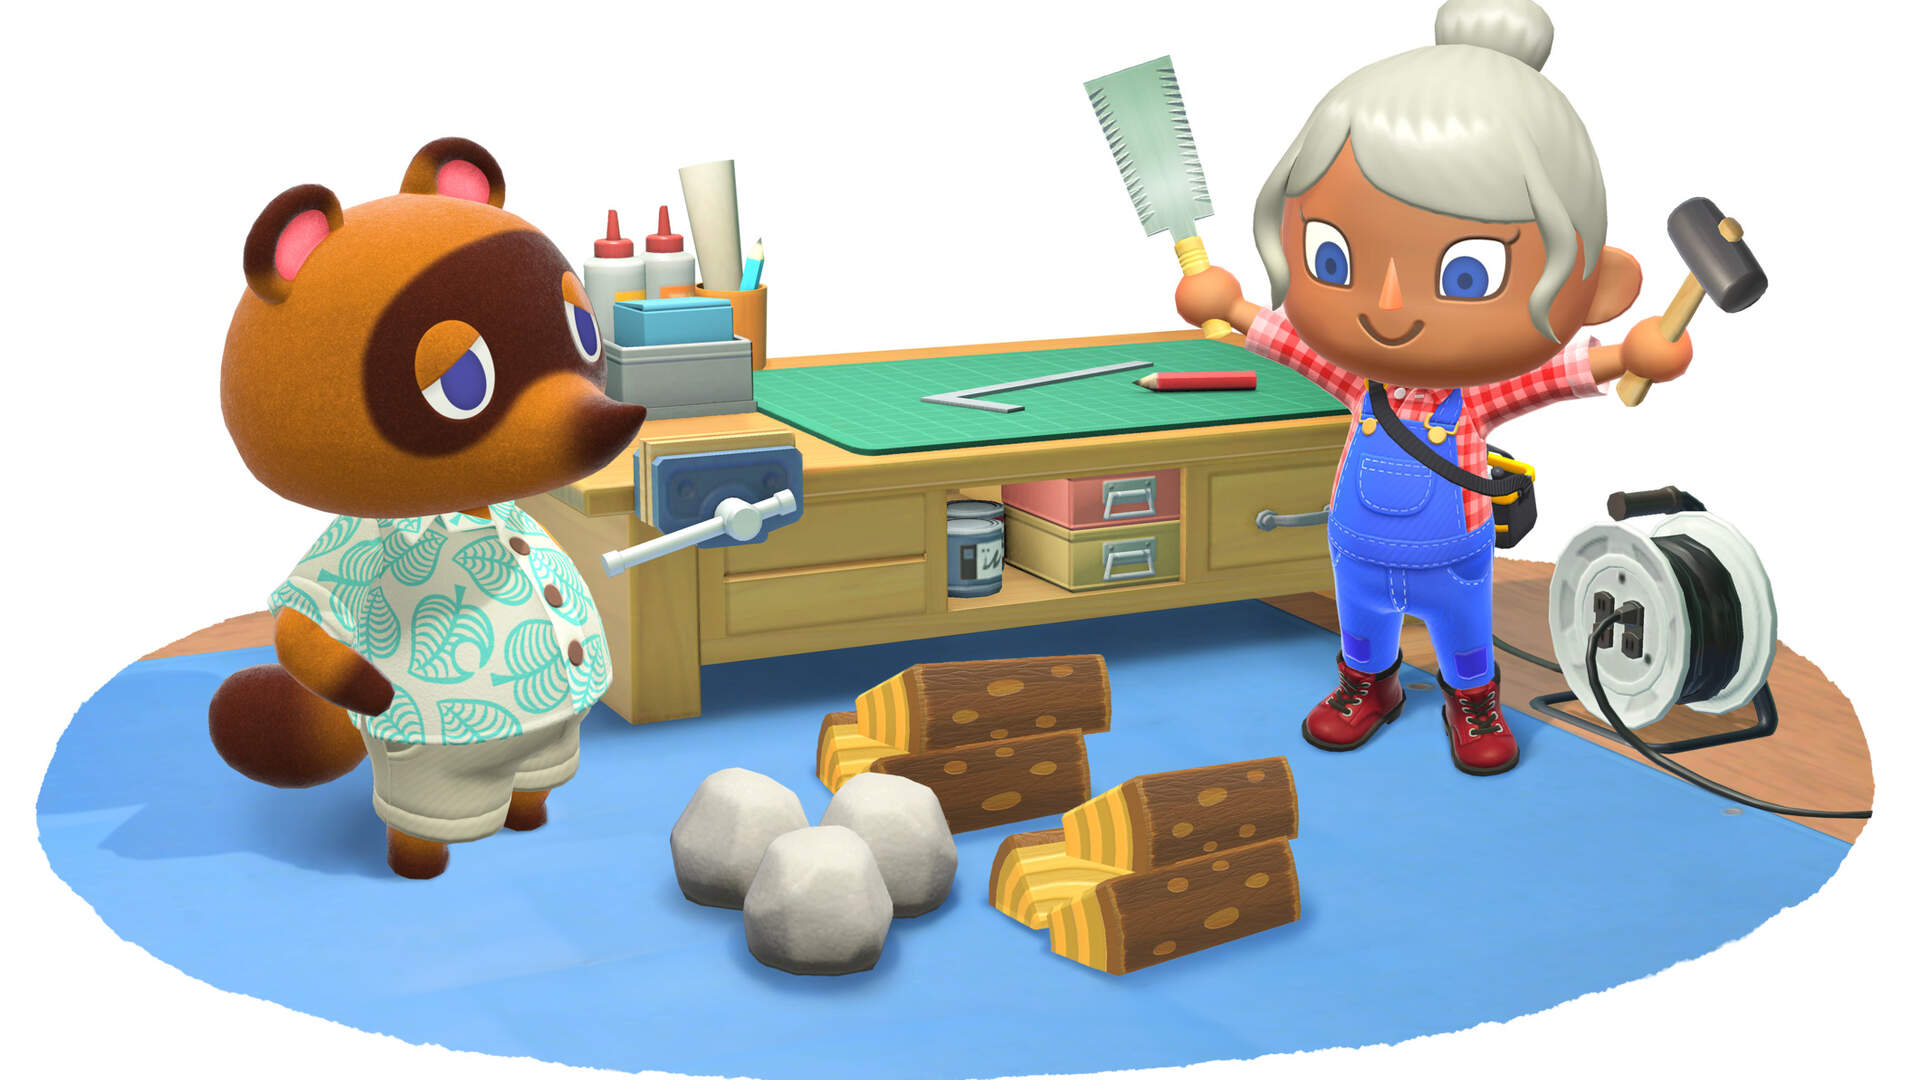 Animal Crossing New Horizons: How to Customize Items